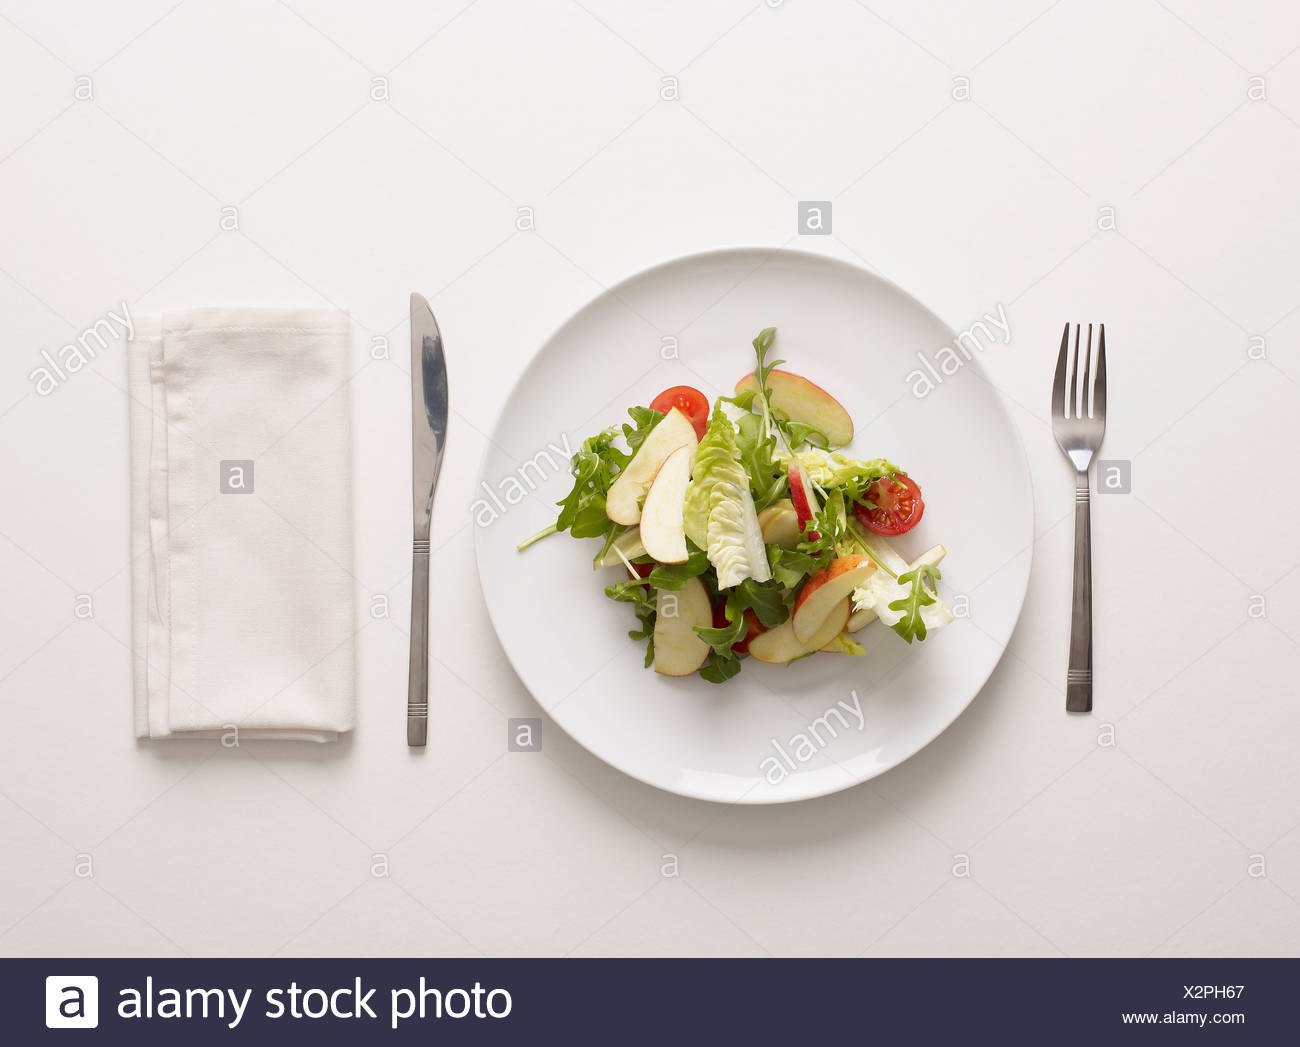 A plate of salad - Stock Image